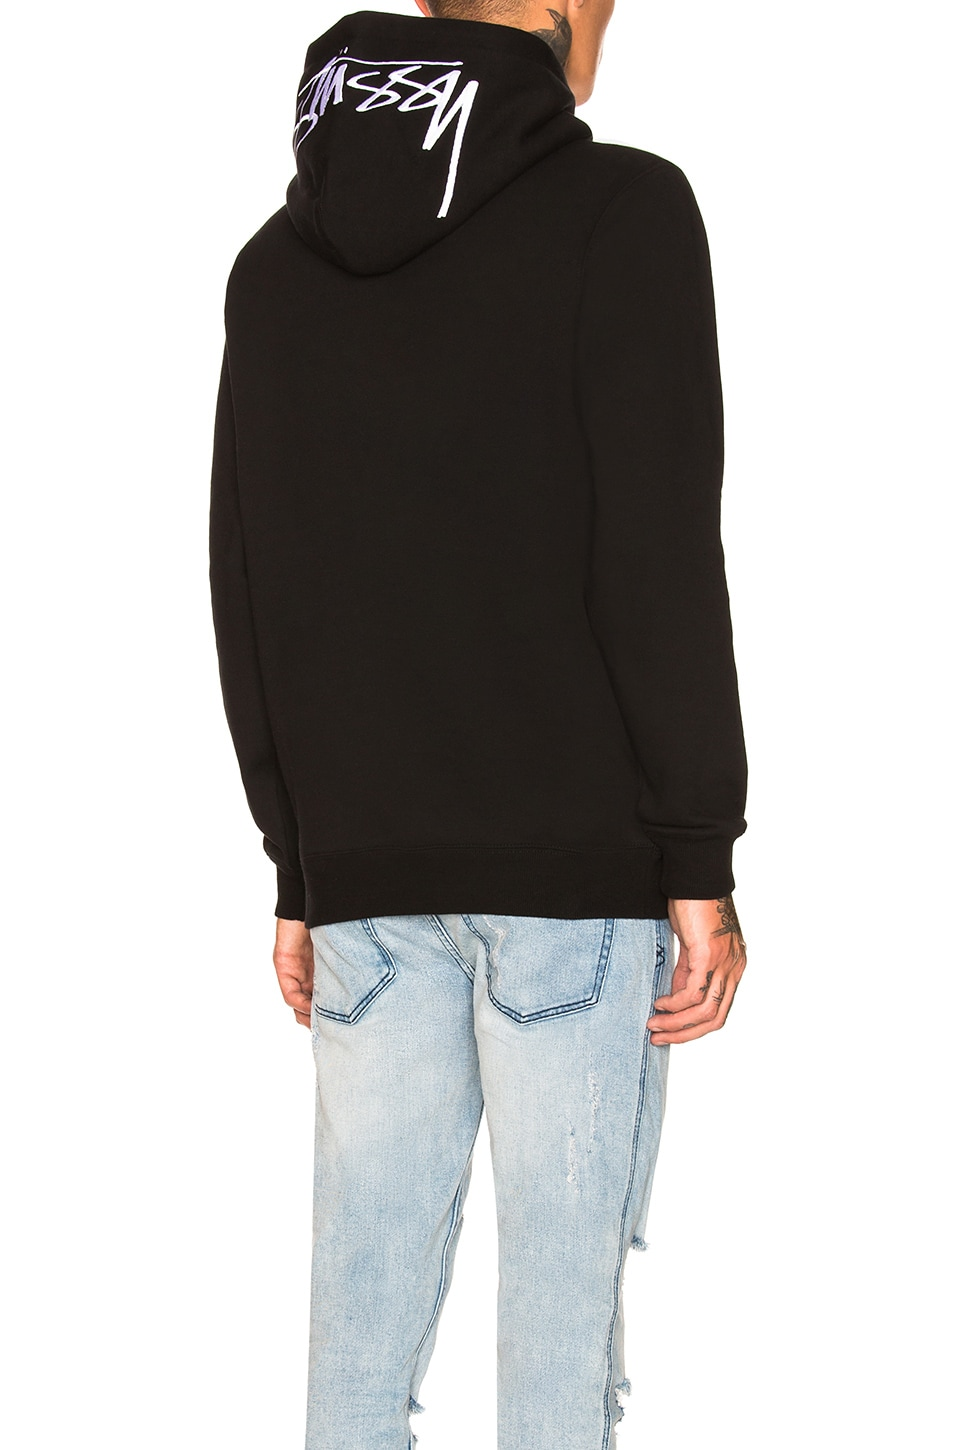 Stussy Smooth Stock Applique Hoodie in Black